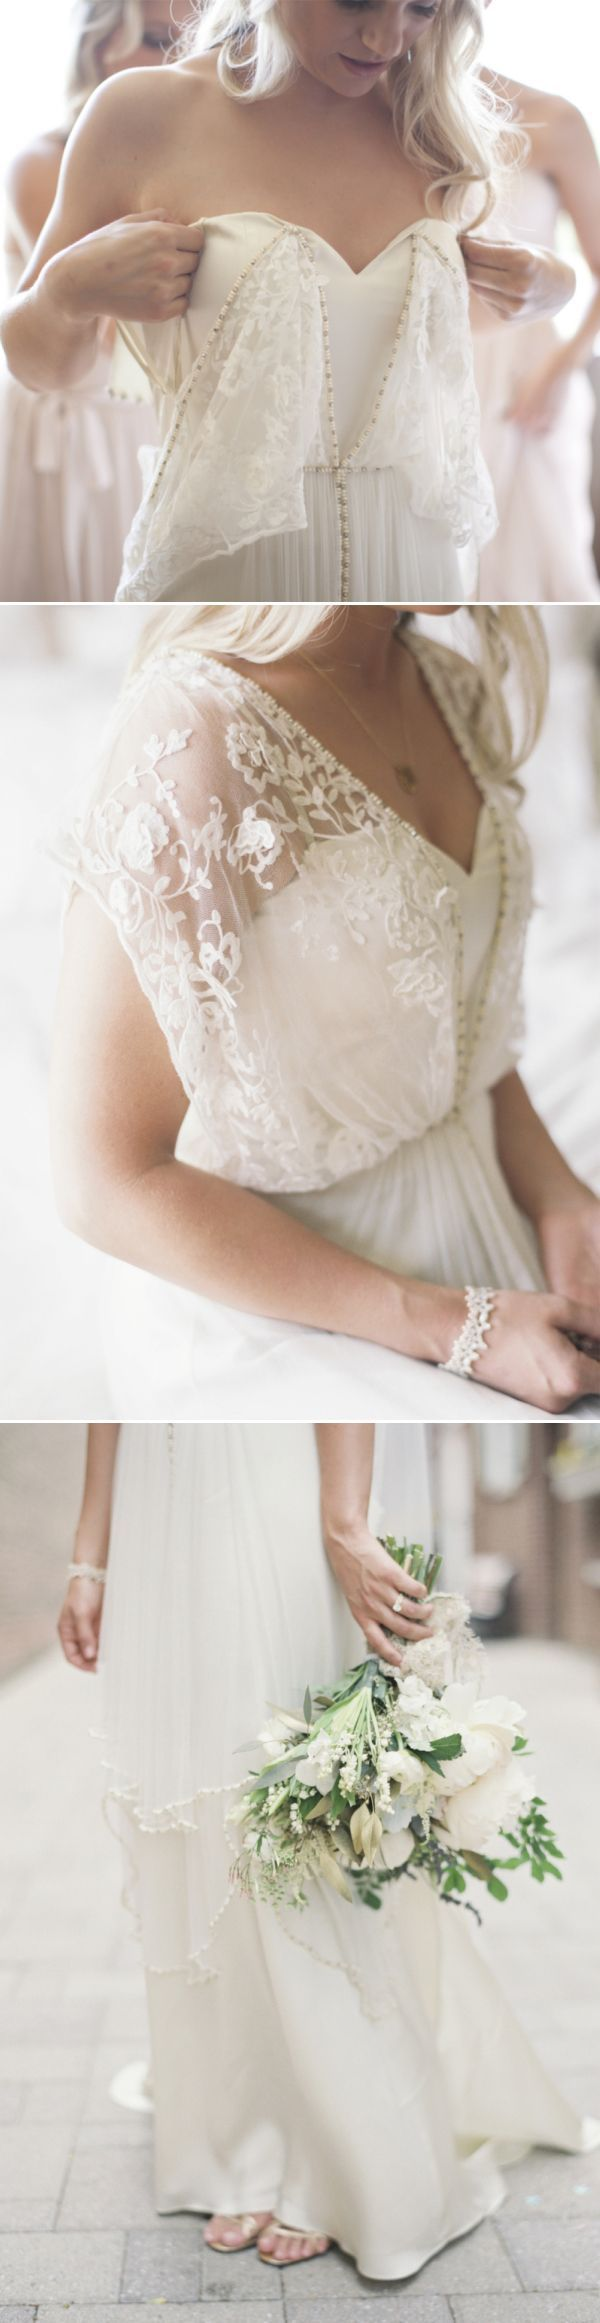 Wedding dresses for brides bridesmaid and flower girls boho